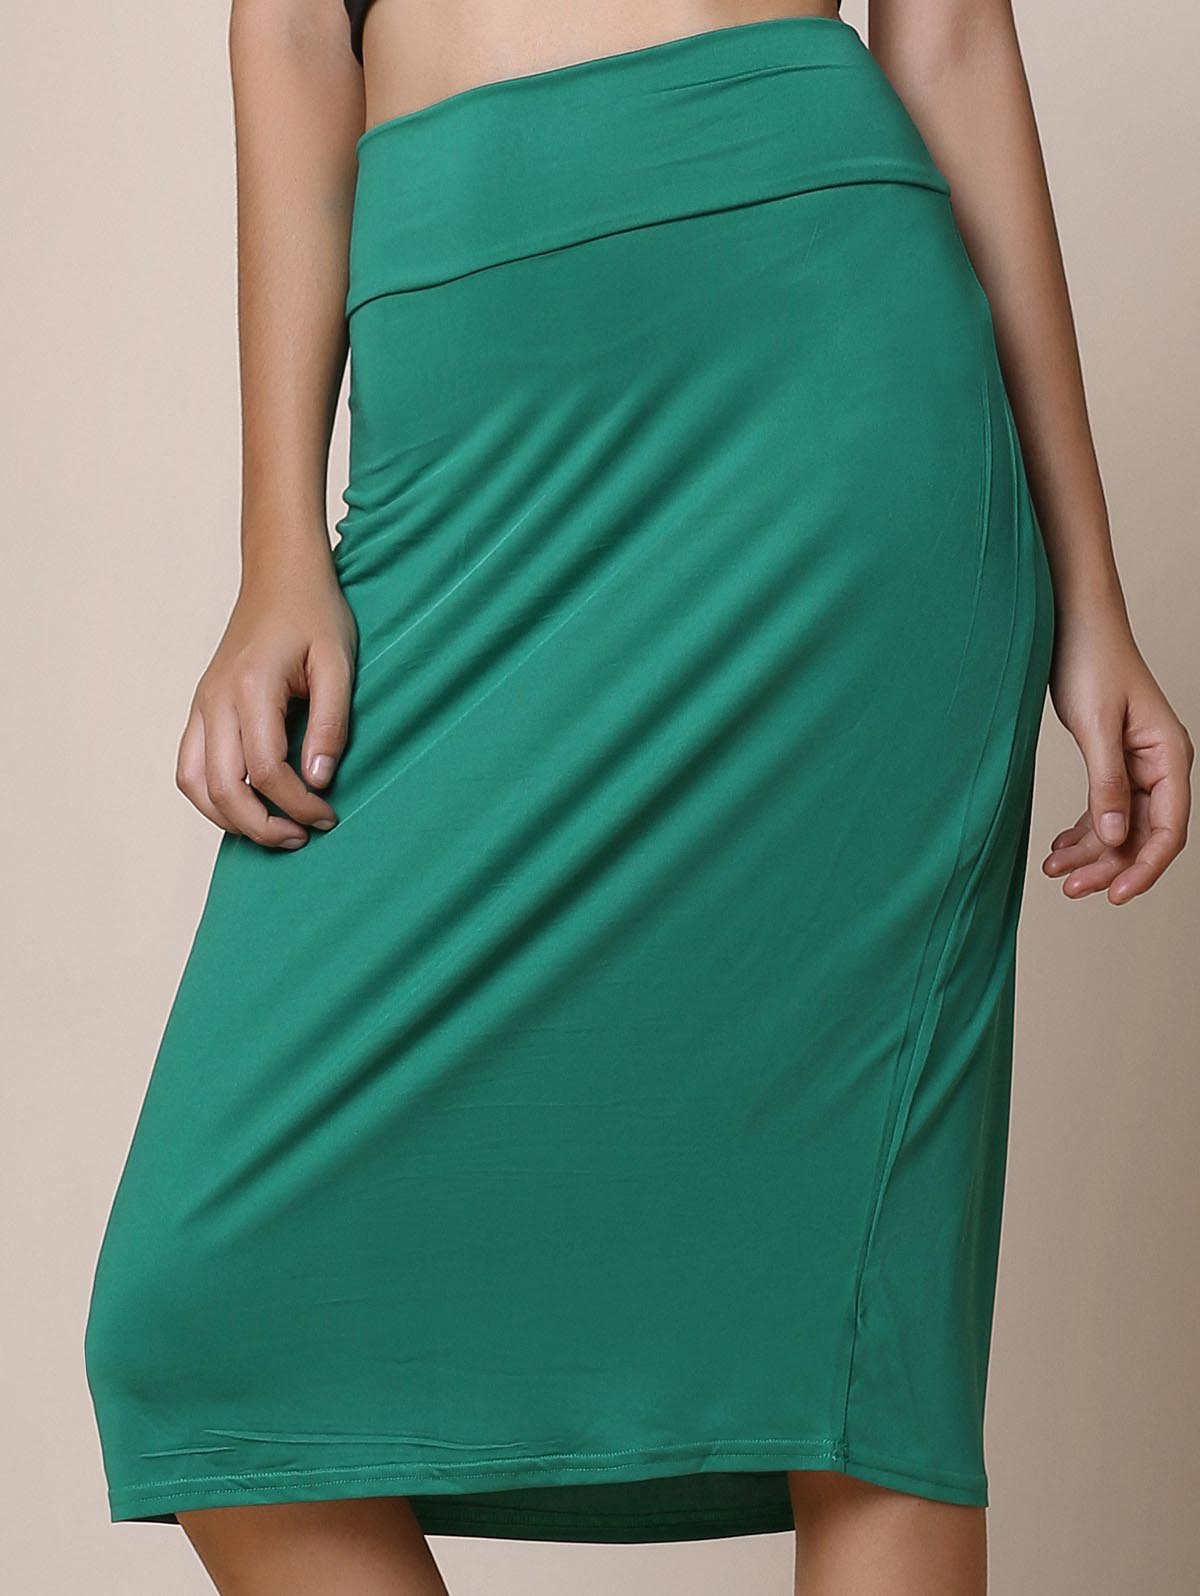 Work Style Solid Color High-Waisted Women's Midi Skirt - GREEN XL